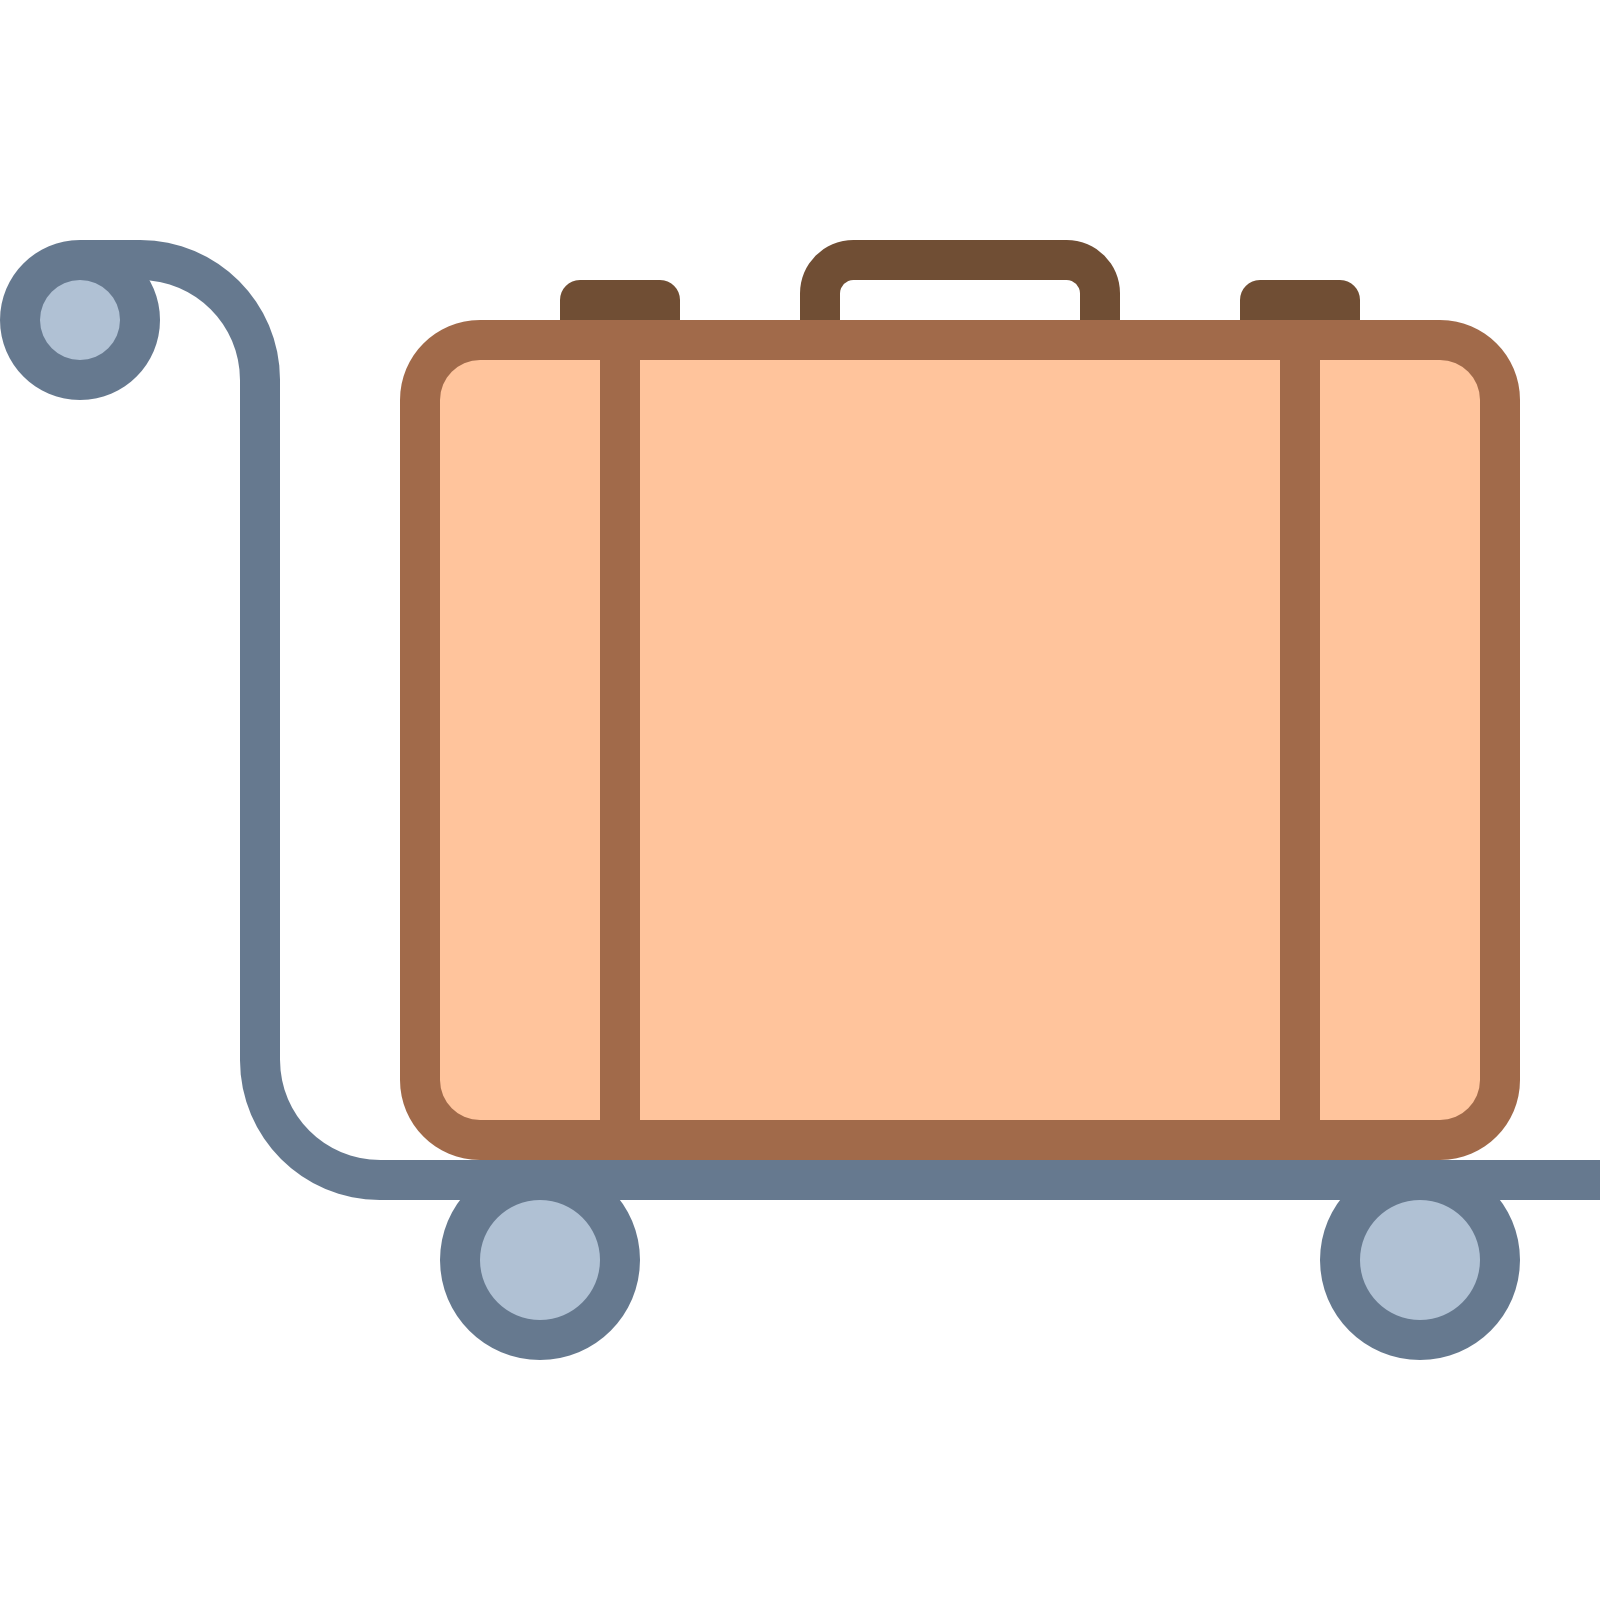 Luggagebags free png transparent. Luggage clipart suitcase handle